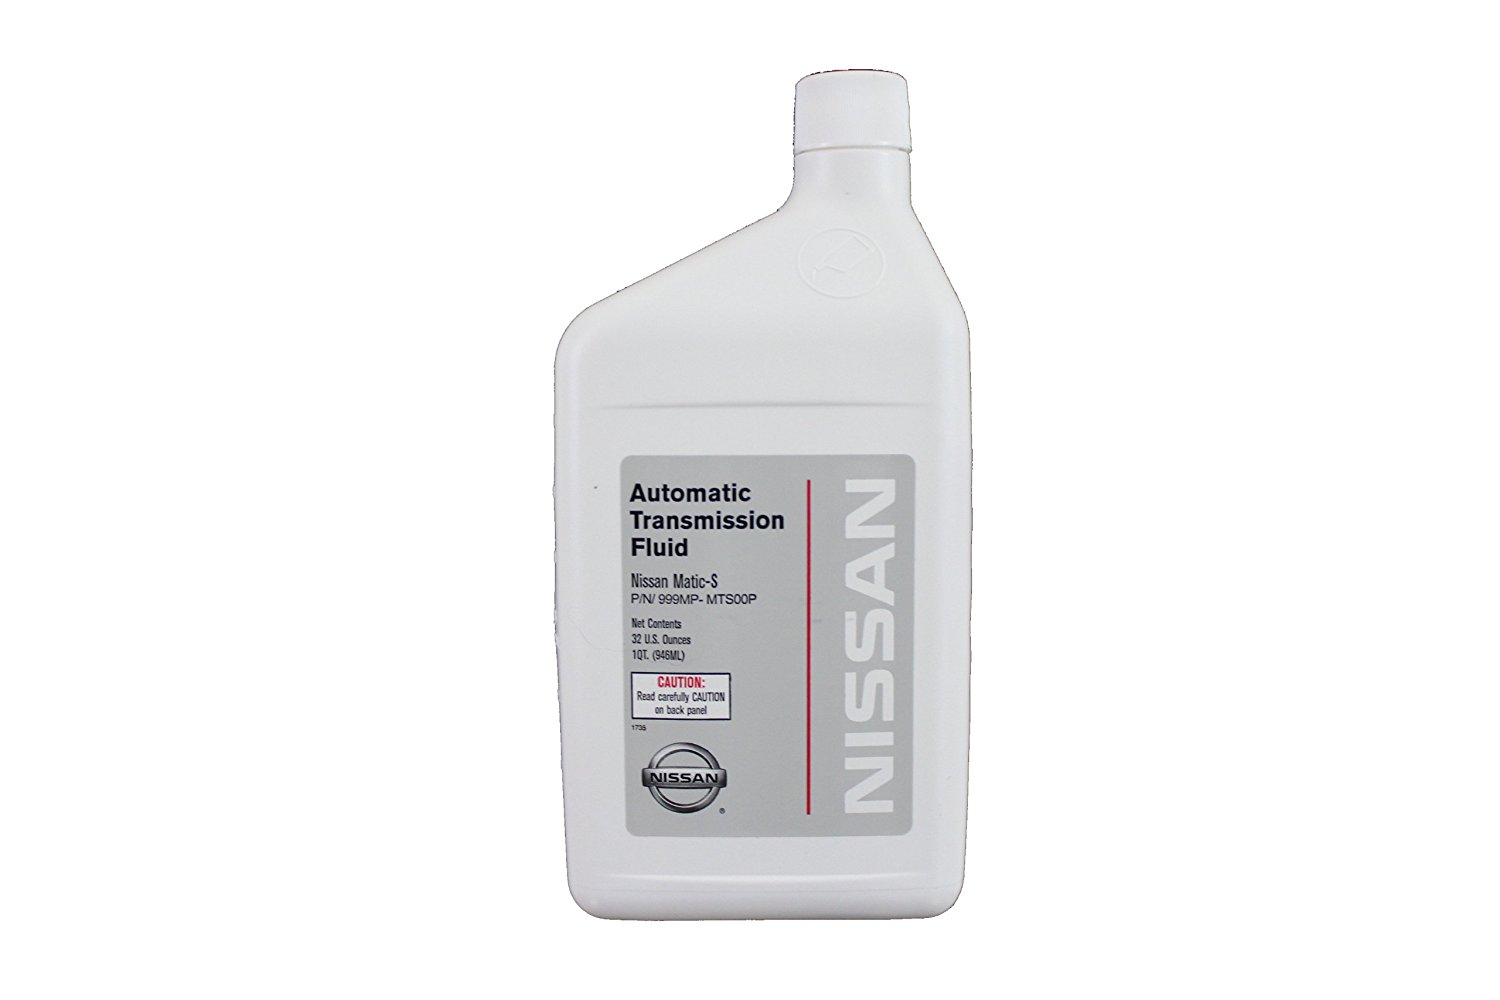 Fluid 999MP-MTS00P Nissan Matic-S Automatic Transmission Fluid - 1 Quart,  The exact Original Equipment Manufacturer fluid that your vehicle came